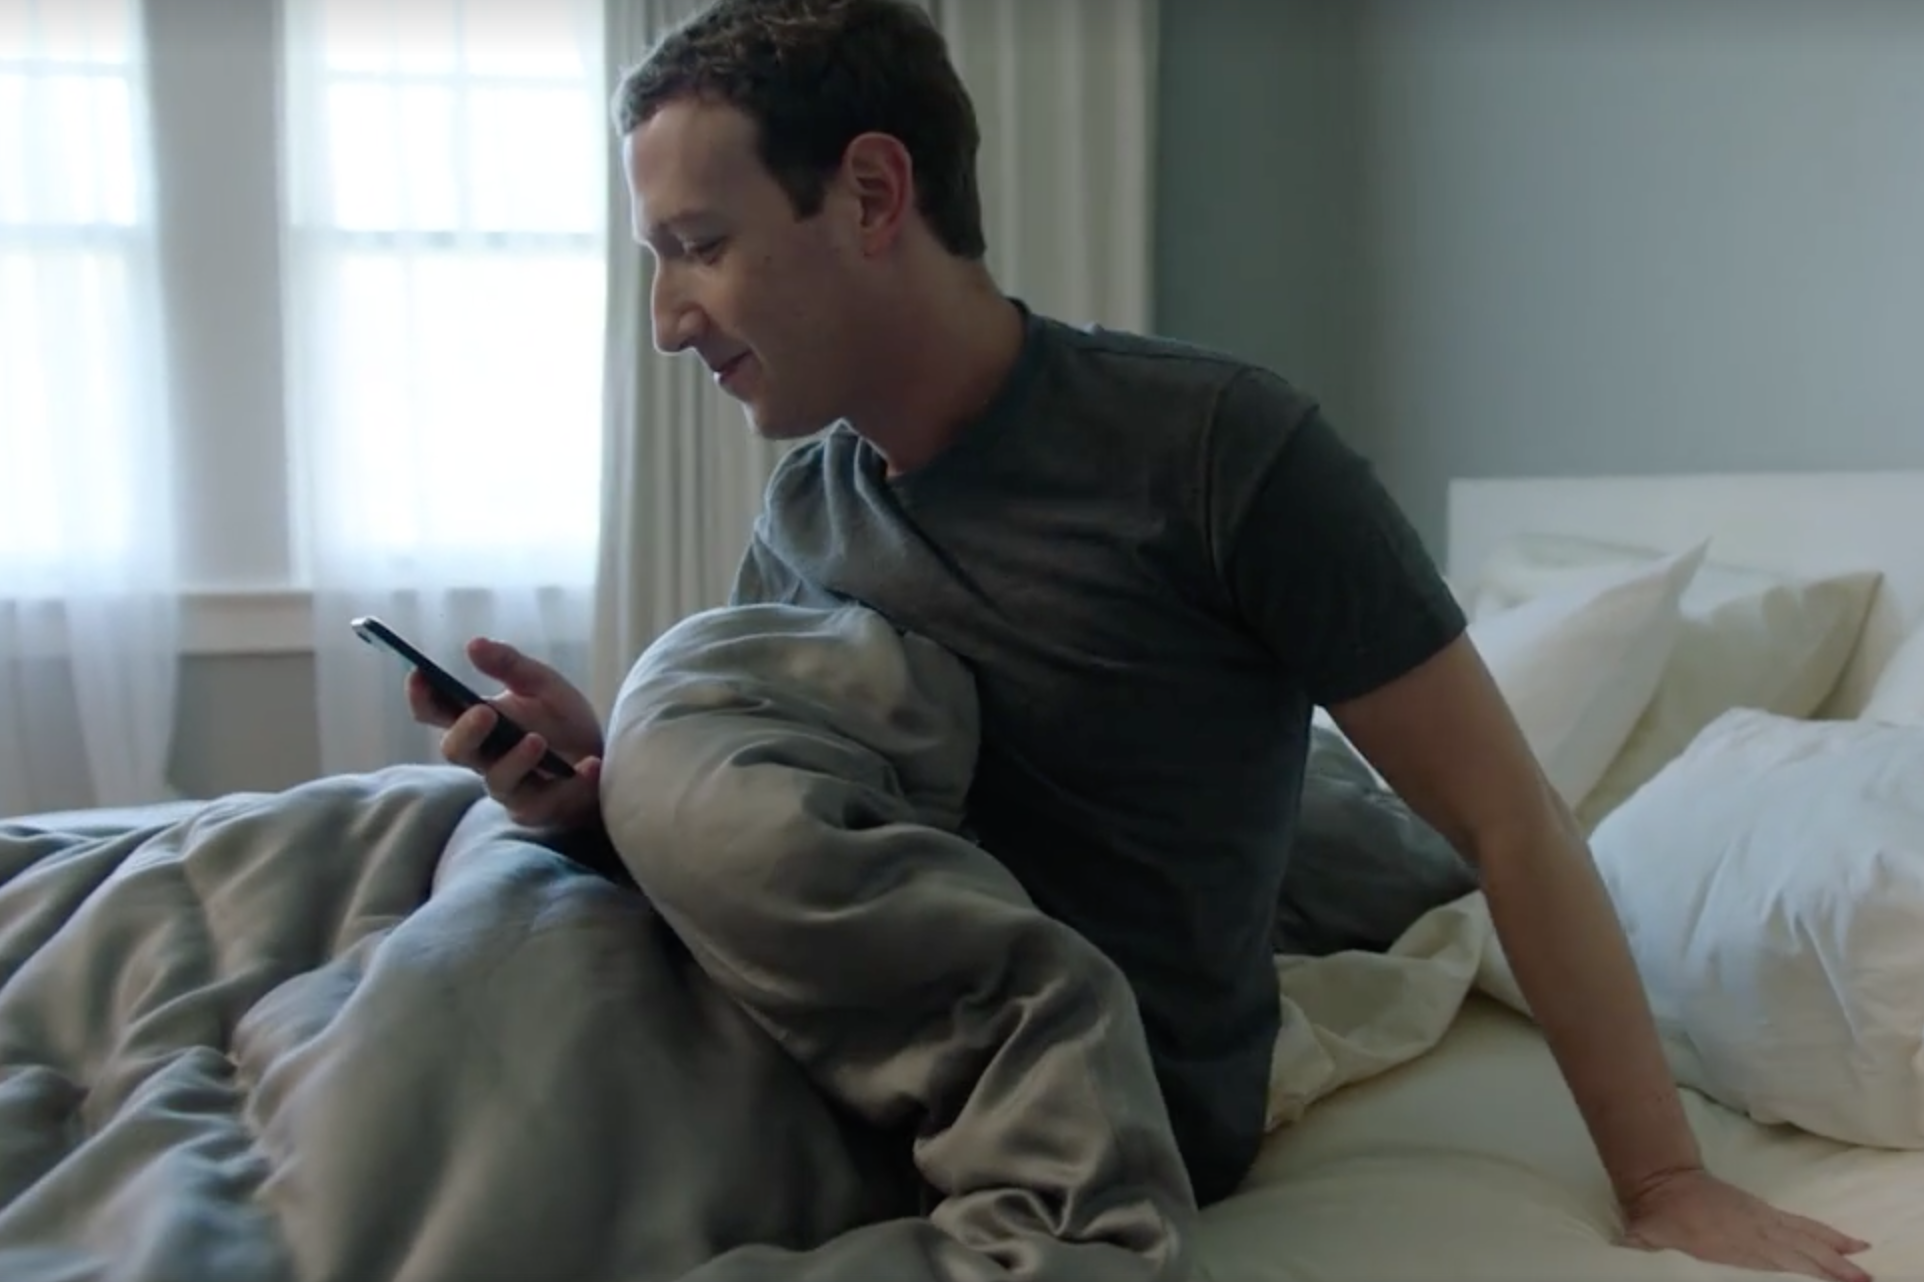 zuckerberg uses his morgan freeman voiced digital butler in